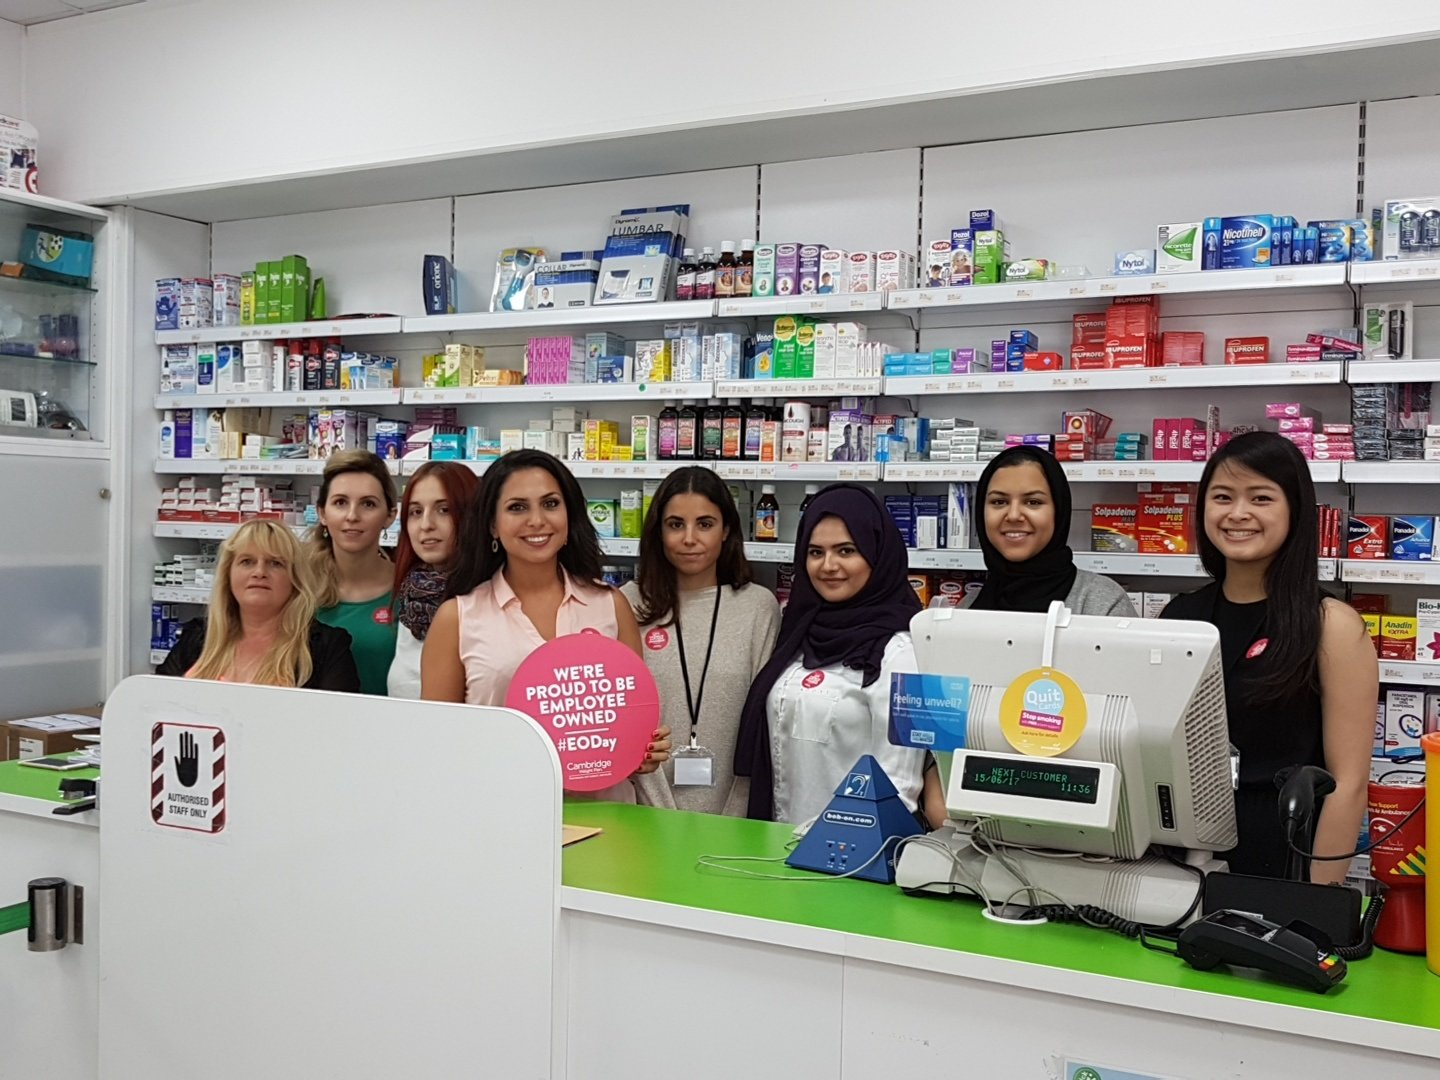 .@GL_Pharmacy is proud to be an employee owed company #EODay #SociallyResponible .@EmployeeOwned https://t.co/9aiAmMFC61